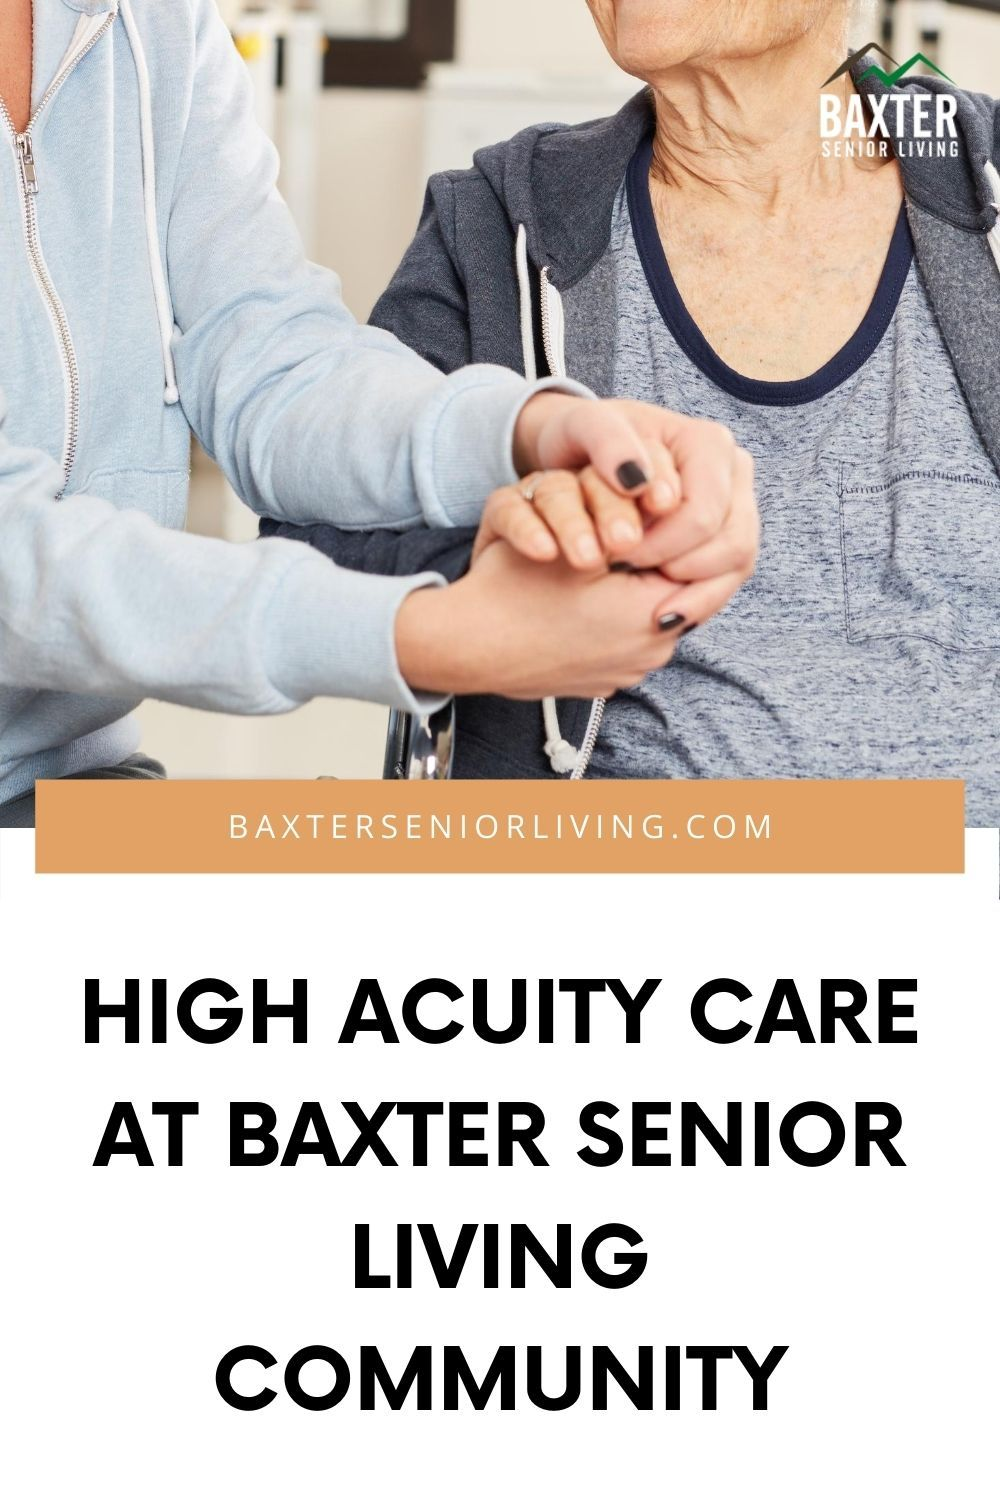 High Acuity Care at Baxter Senior Living Community in 2020